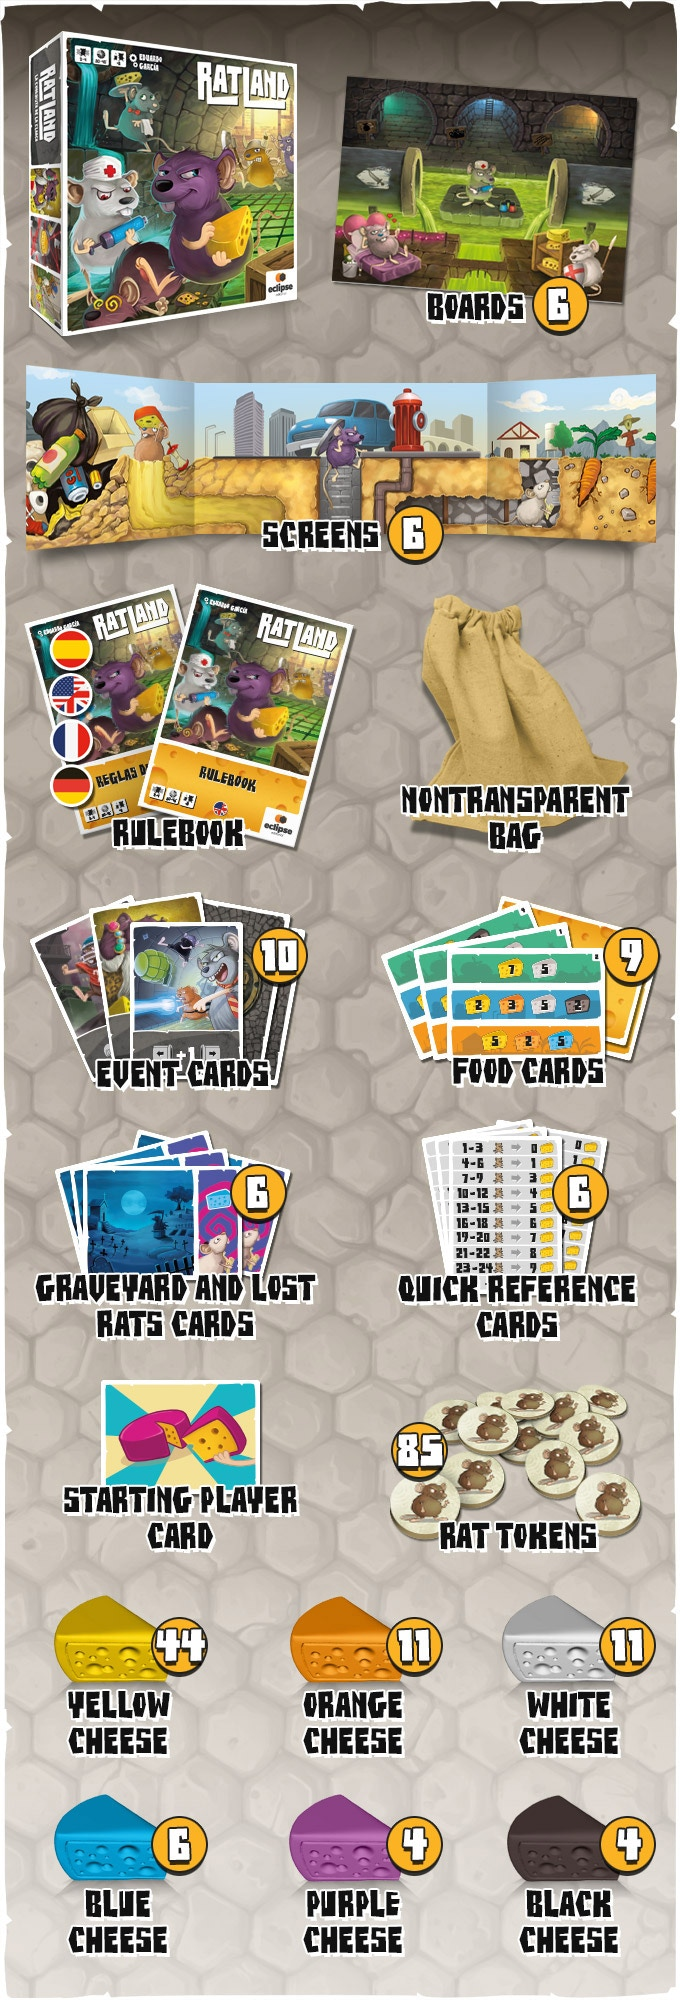 Image taken from the official website of the Kickstarter in Castilian though there is still missing material added by the Stretch Goals as 4 additional event cards 12 clan cards and a turn marker. Additionally, bring blank letters to create meal cards and personalized events.